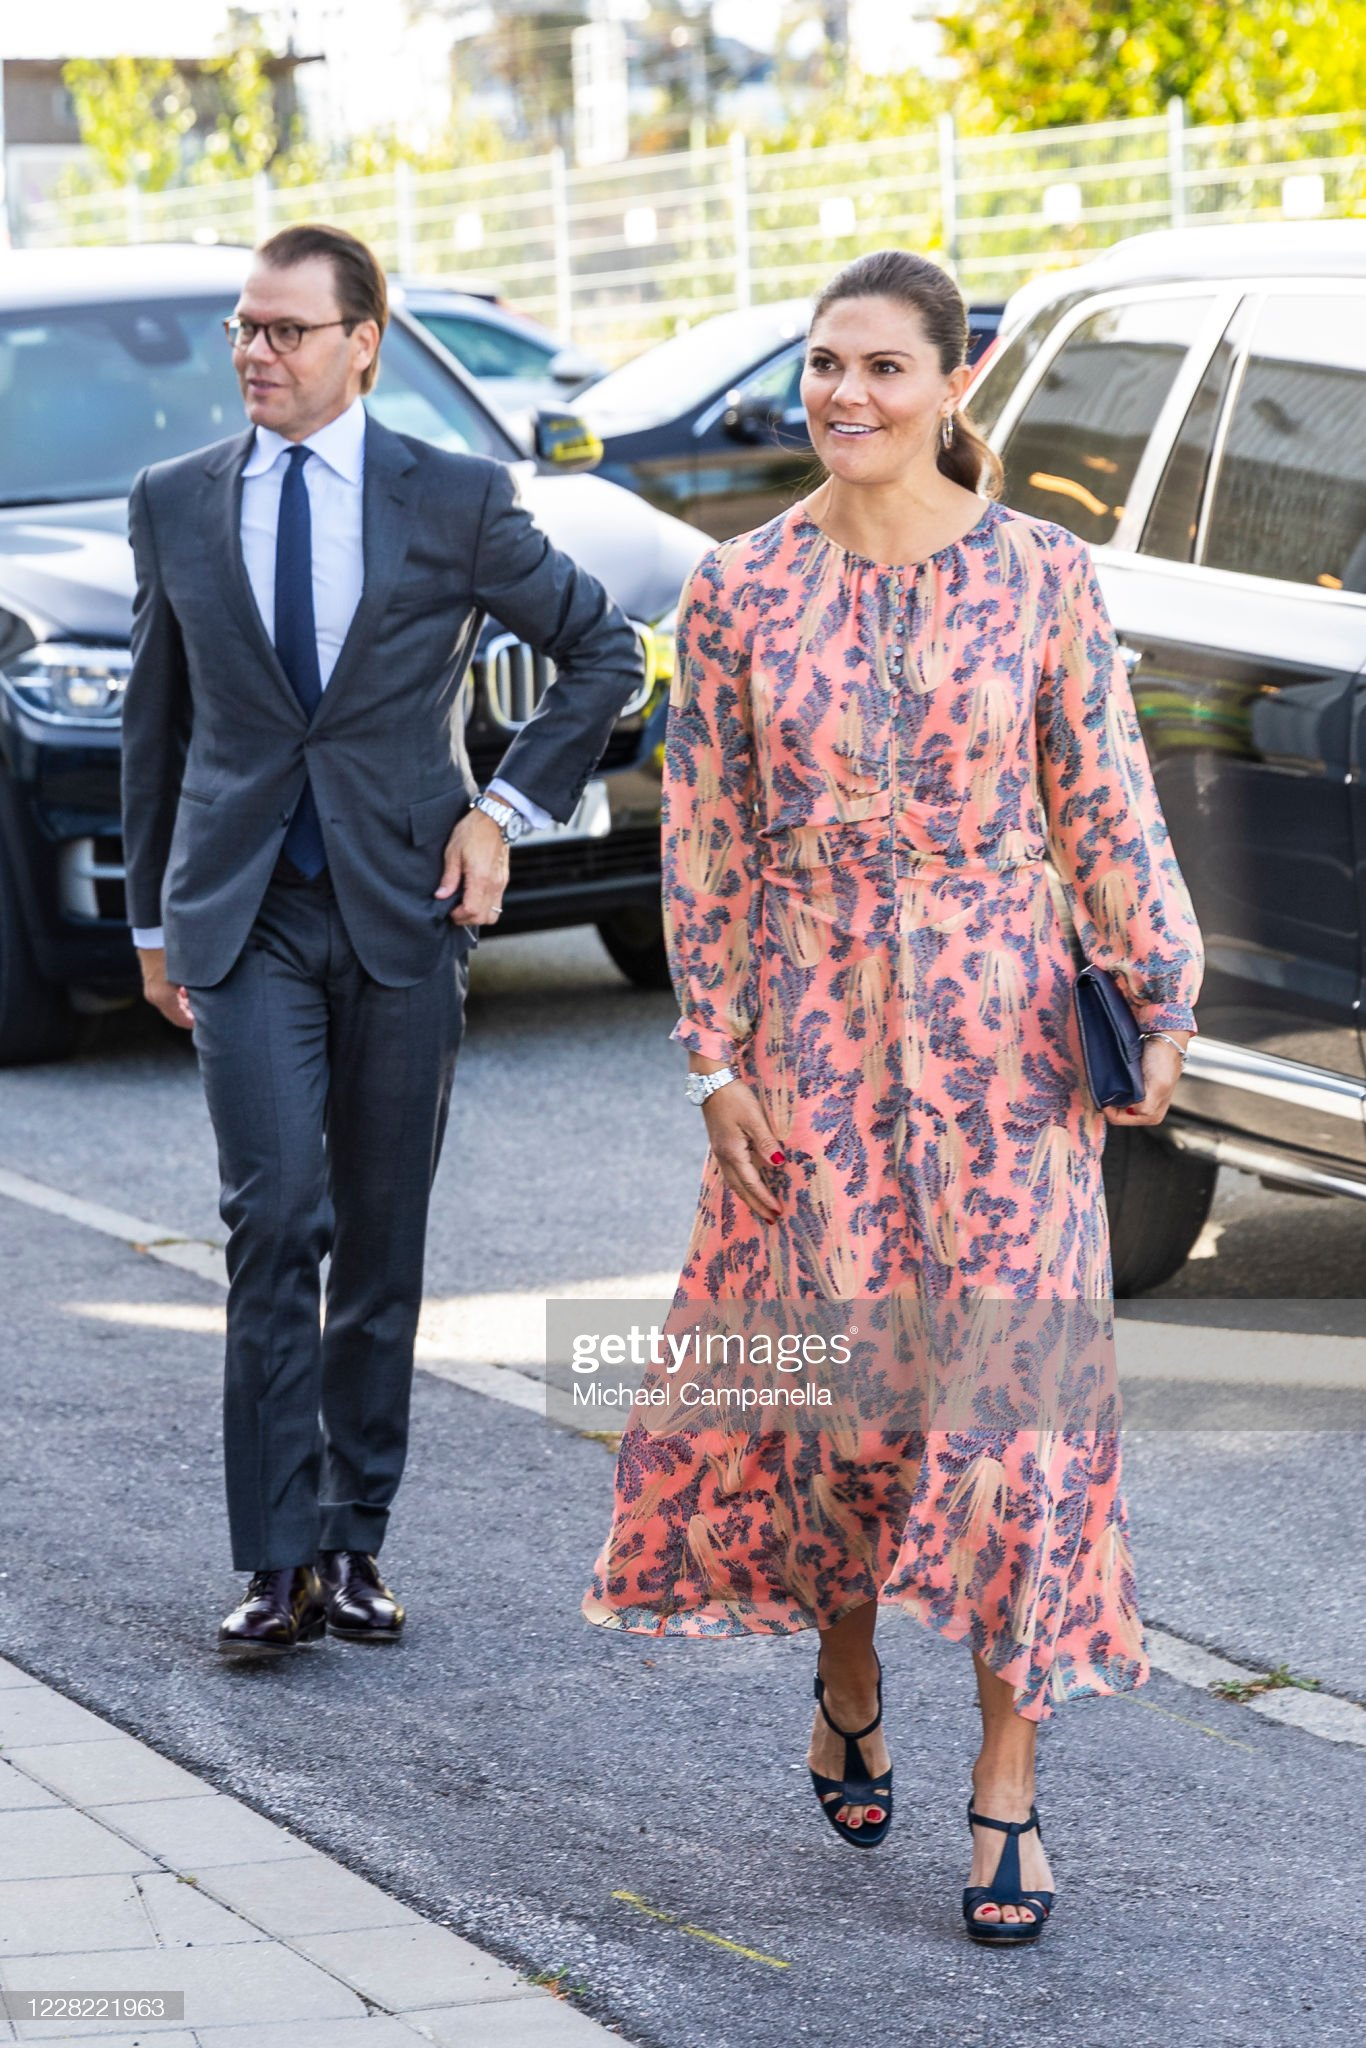 crown-princess-victoria-and-prince-daniel-of-sweden-visit-an-station-picture-id1228221963